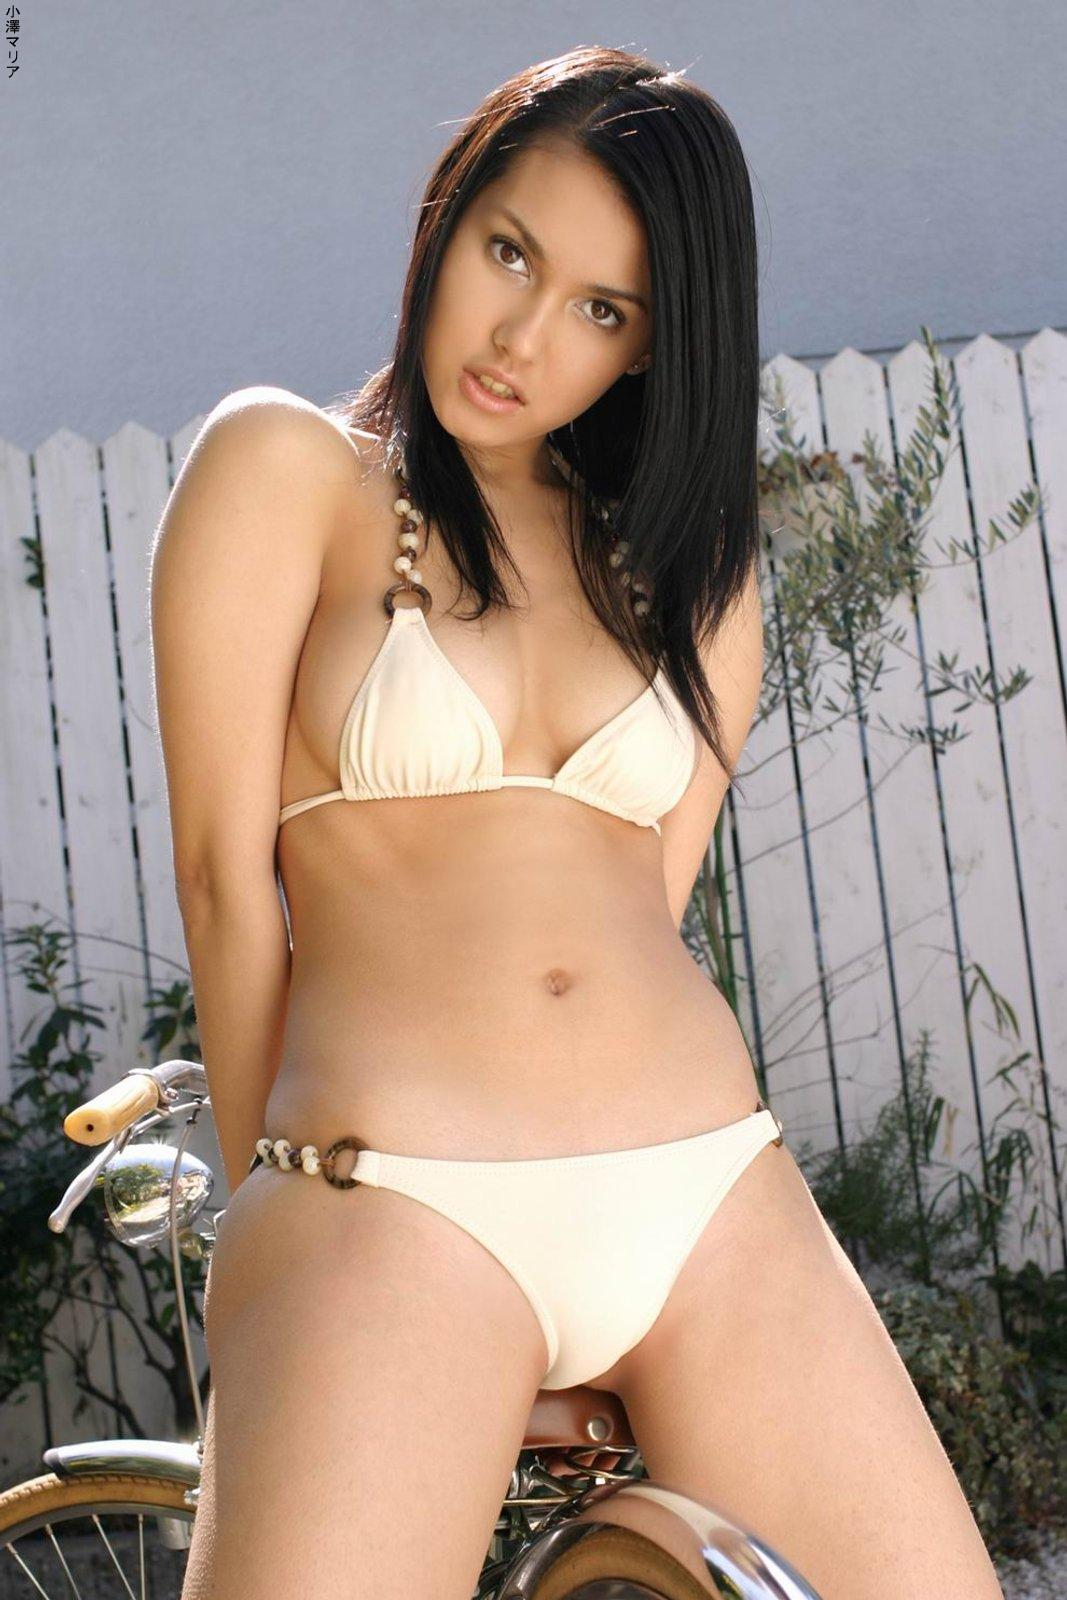 Hot Candy Girls: Maria Ozawa FHM Sexiest Women Top 78